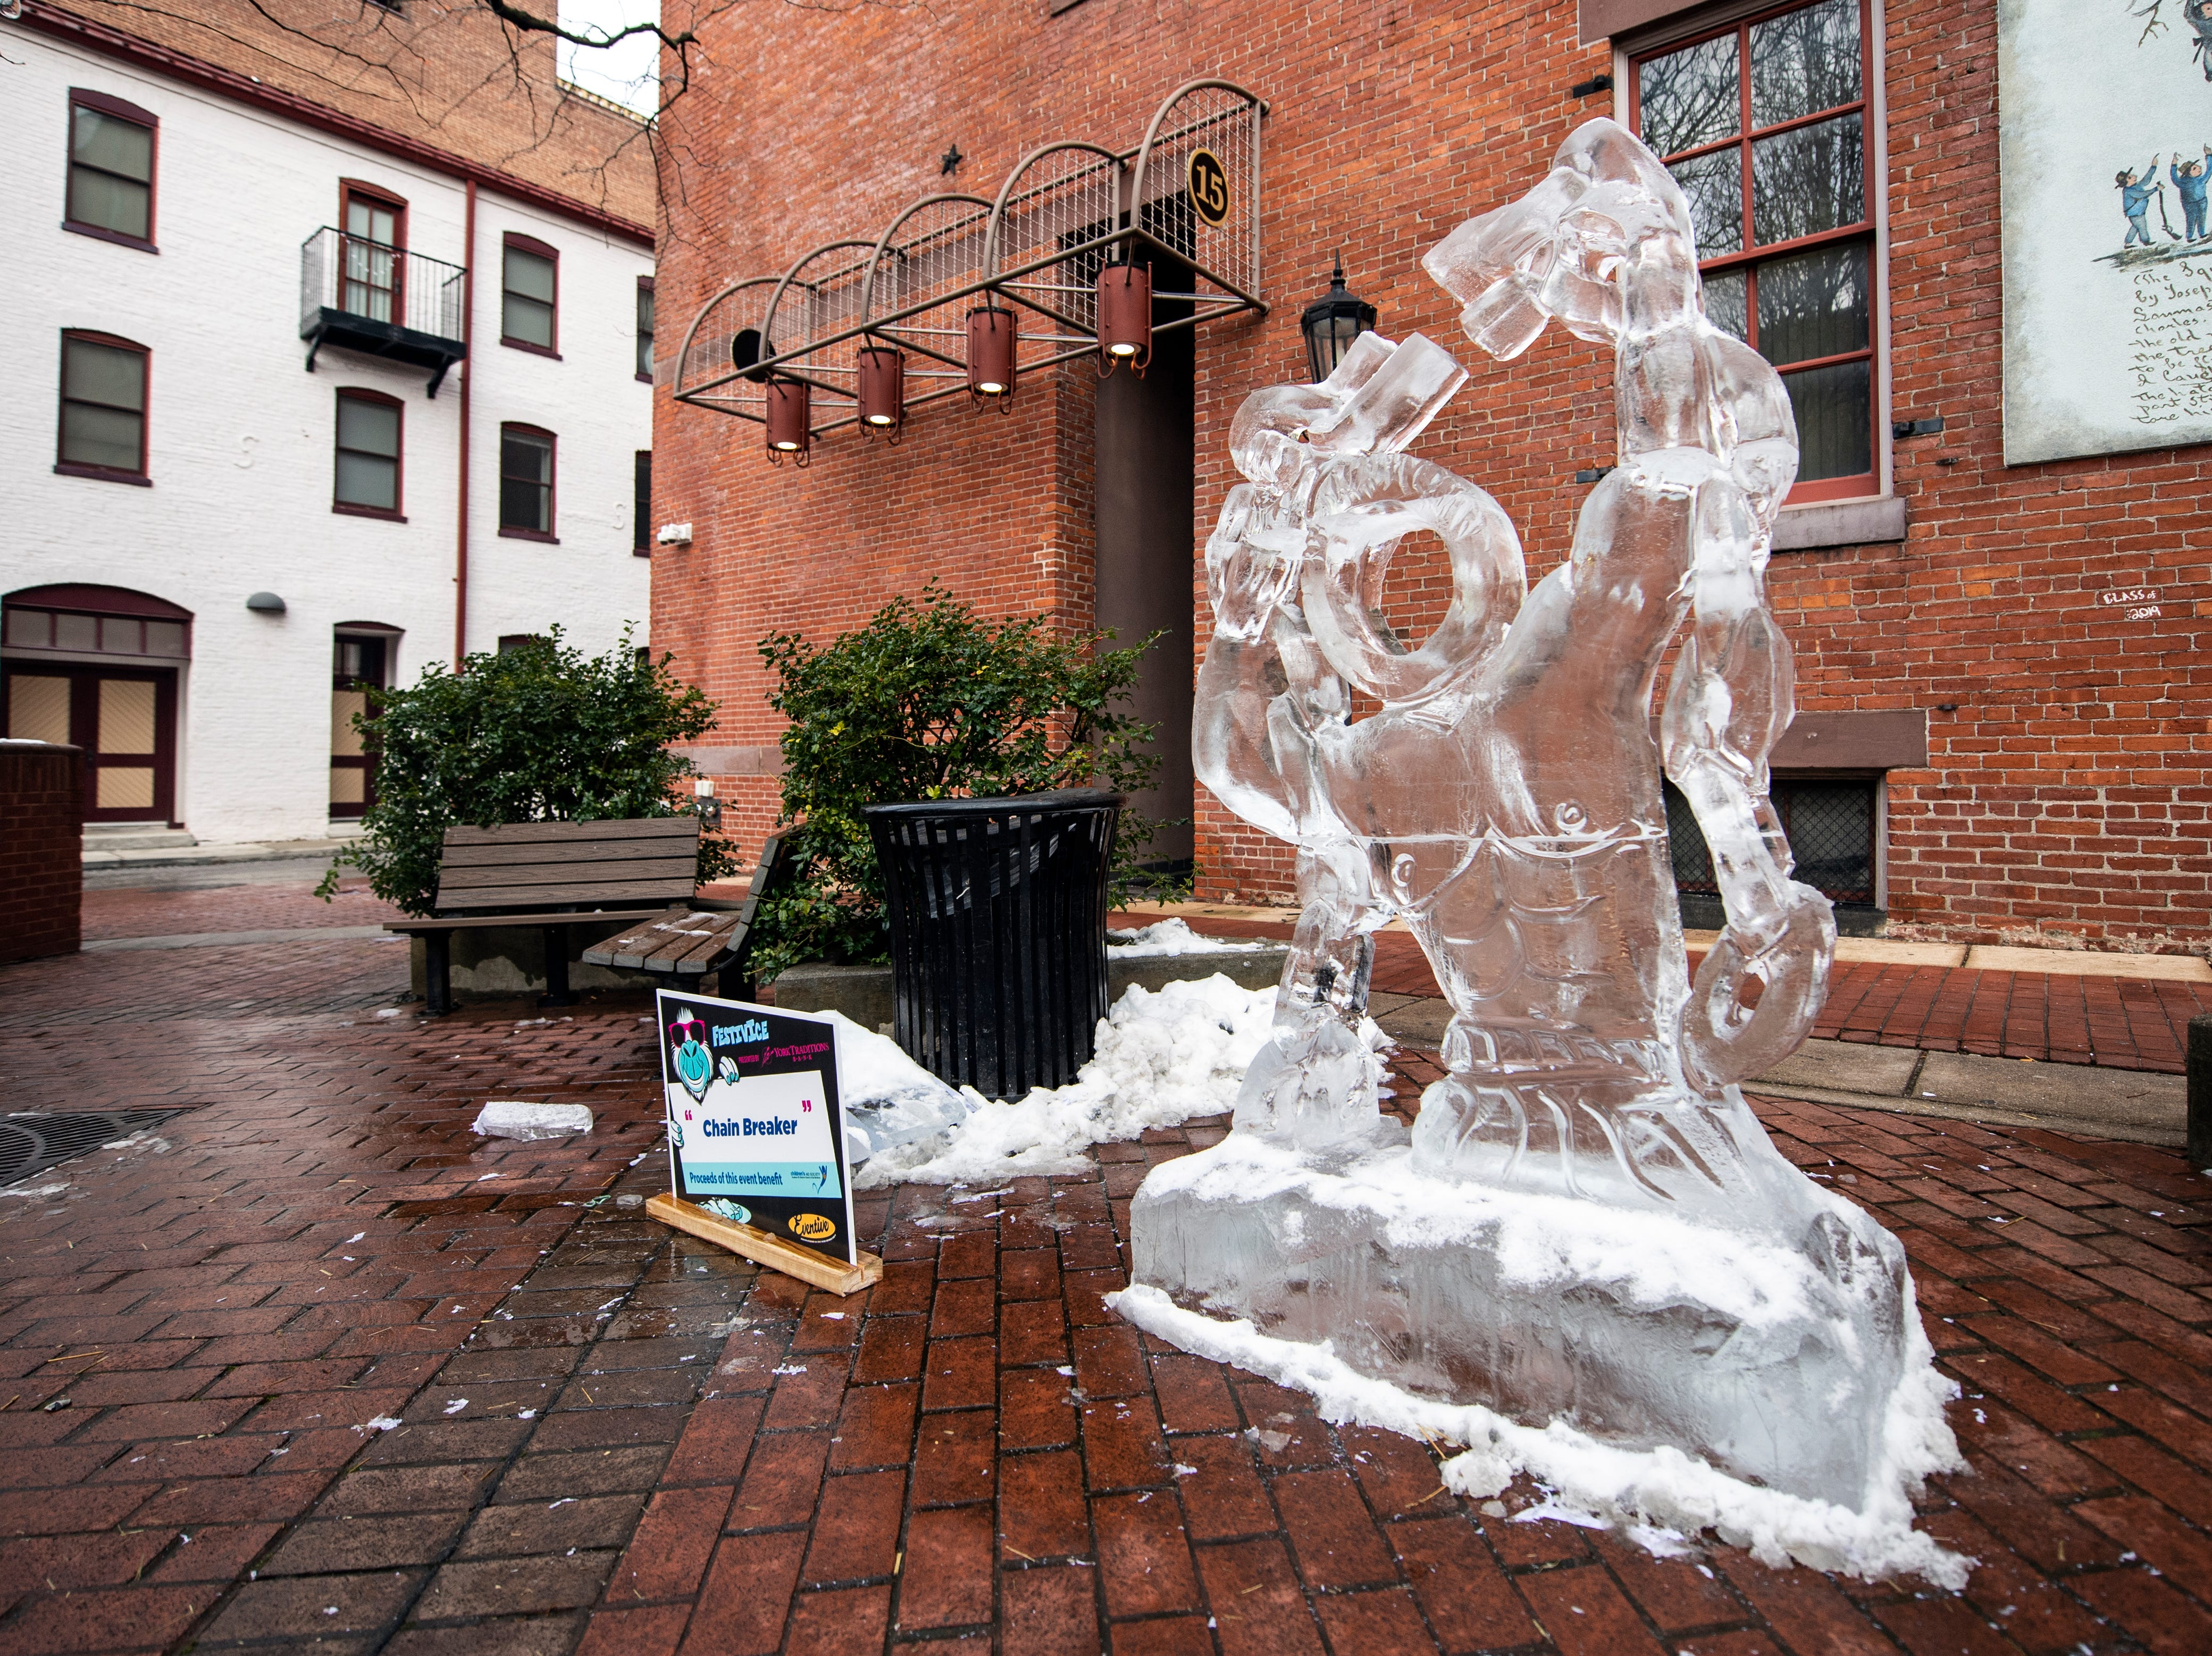 The 'Chain Breaker' ice sculpture is one of many interactive sculptures found in Cherry Lane, downtown, Friday, Jan. 18, 2019. The FestivICE ice festival has interactive ice sculptures, an ice slide and more. The three-day event ends Saturday.